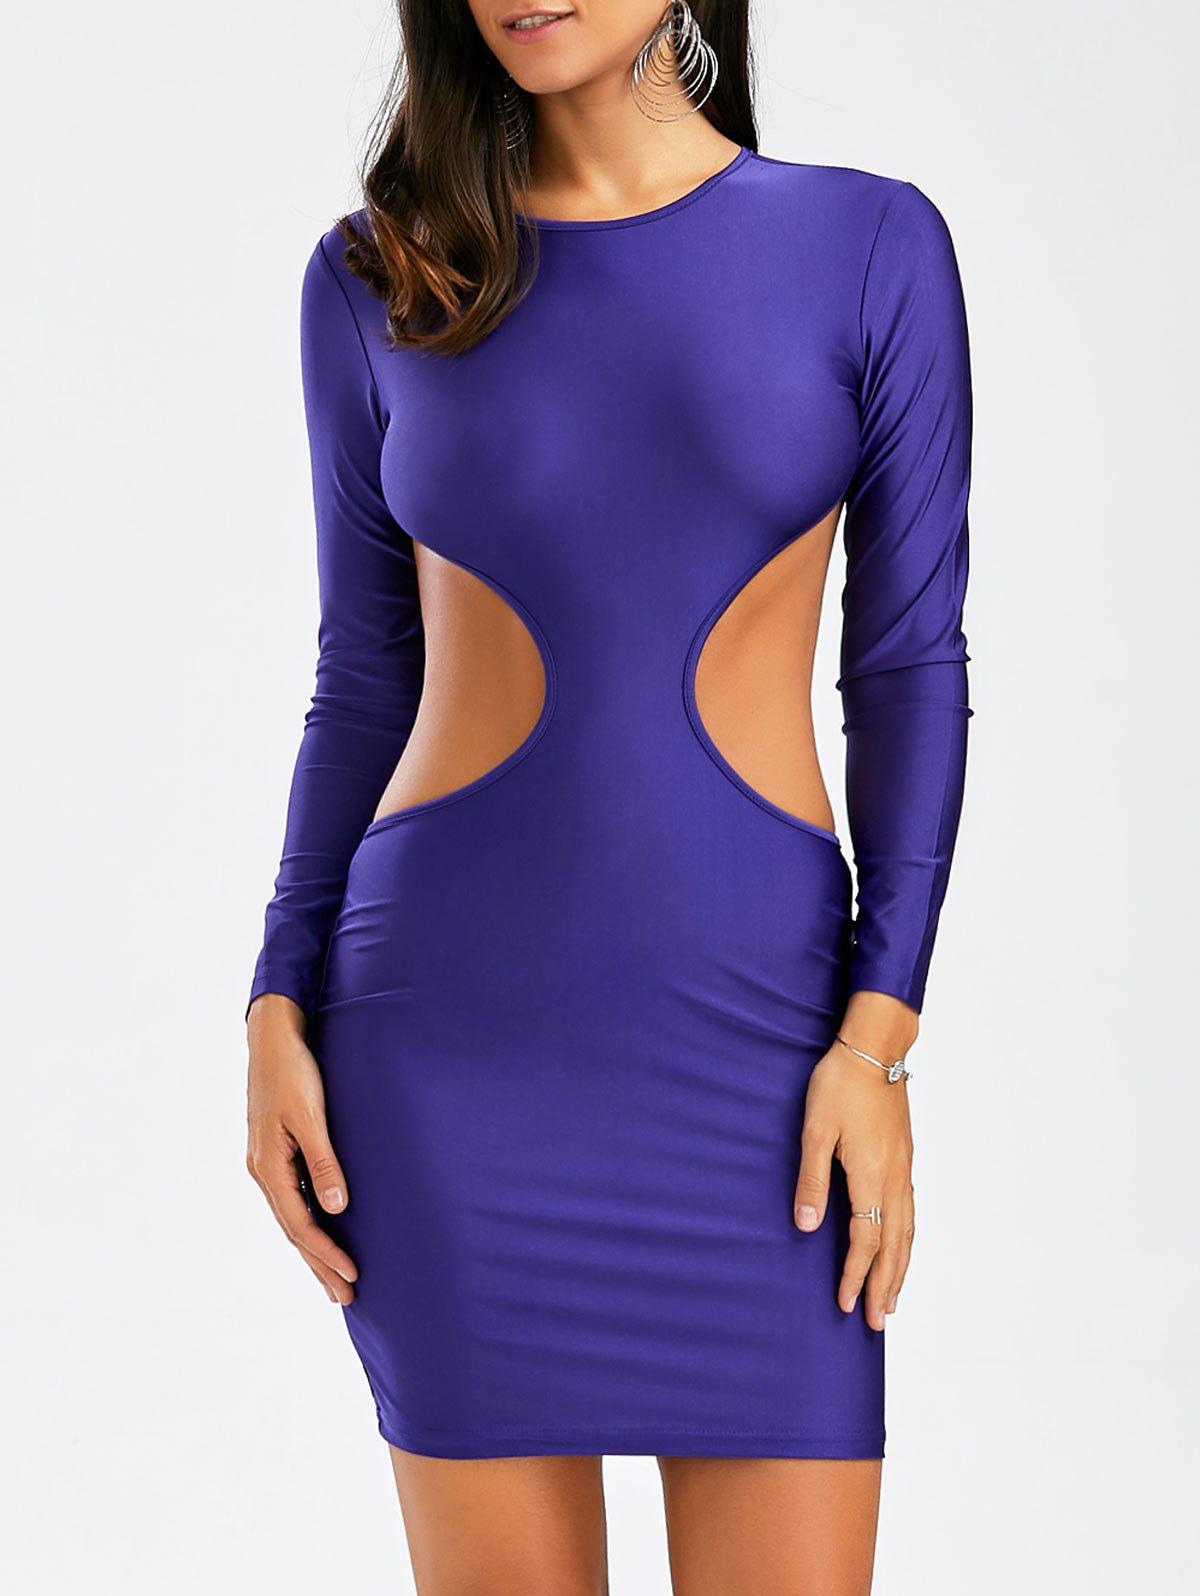 New Backless Mini Cut Out Bodycon Club Dress